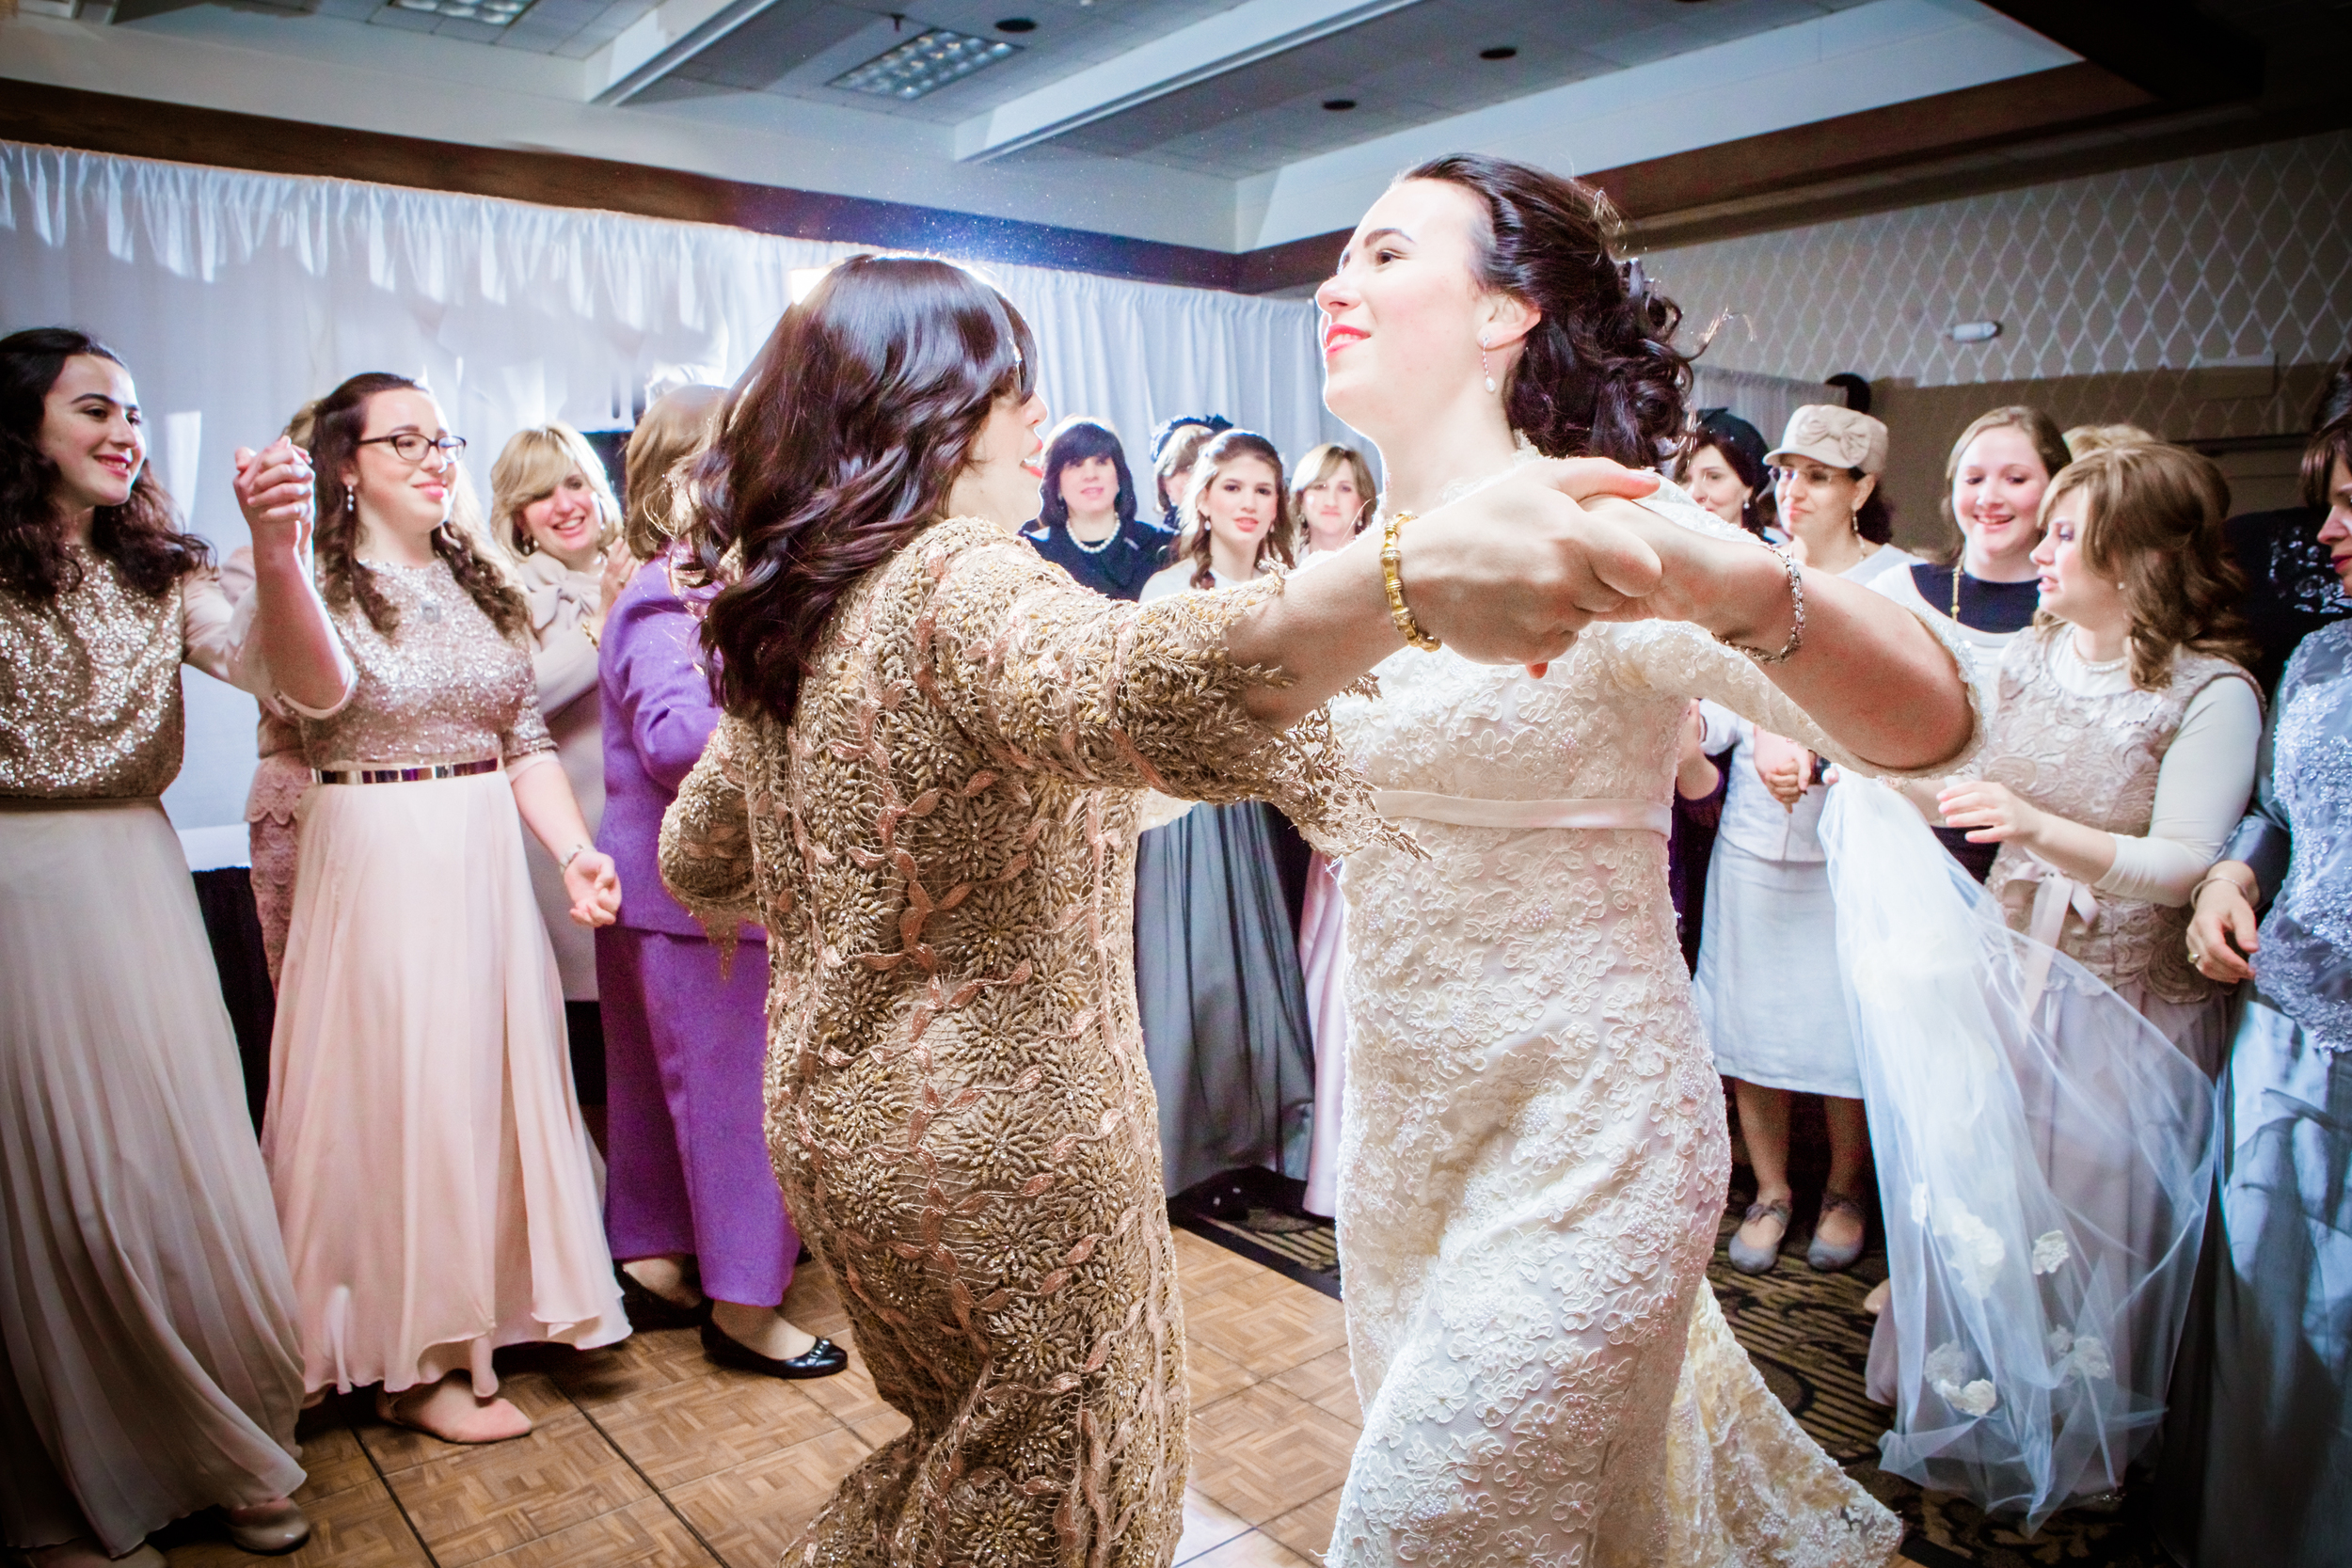 Wedding Draizy Yossi | Piha studio photography, new york, events, -15.jpg